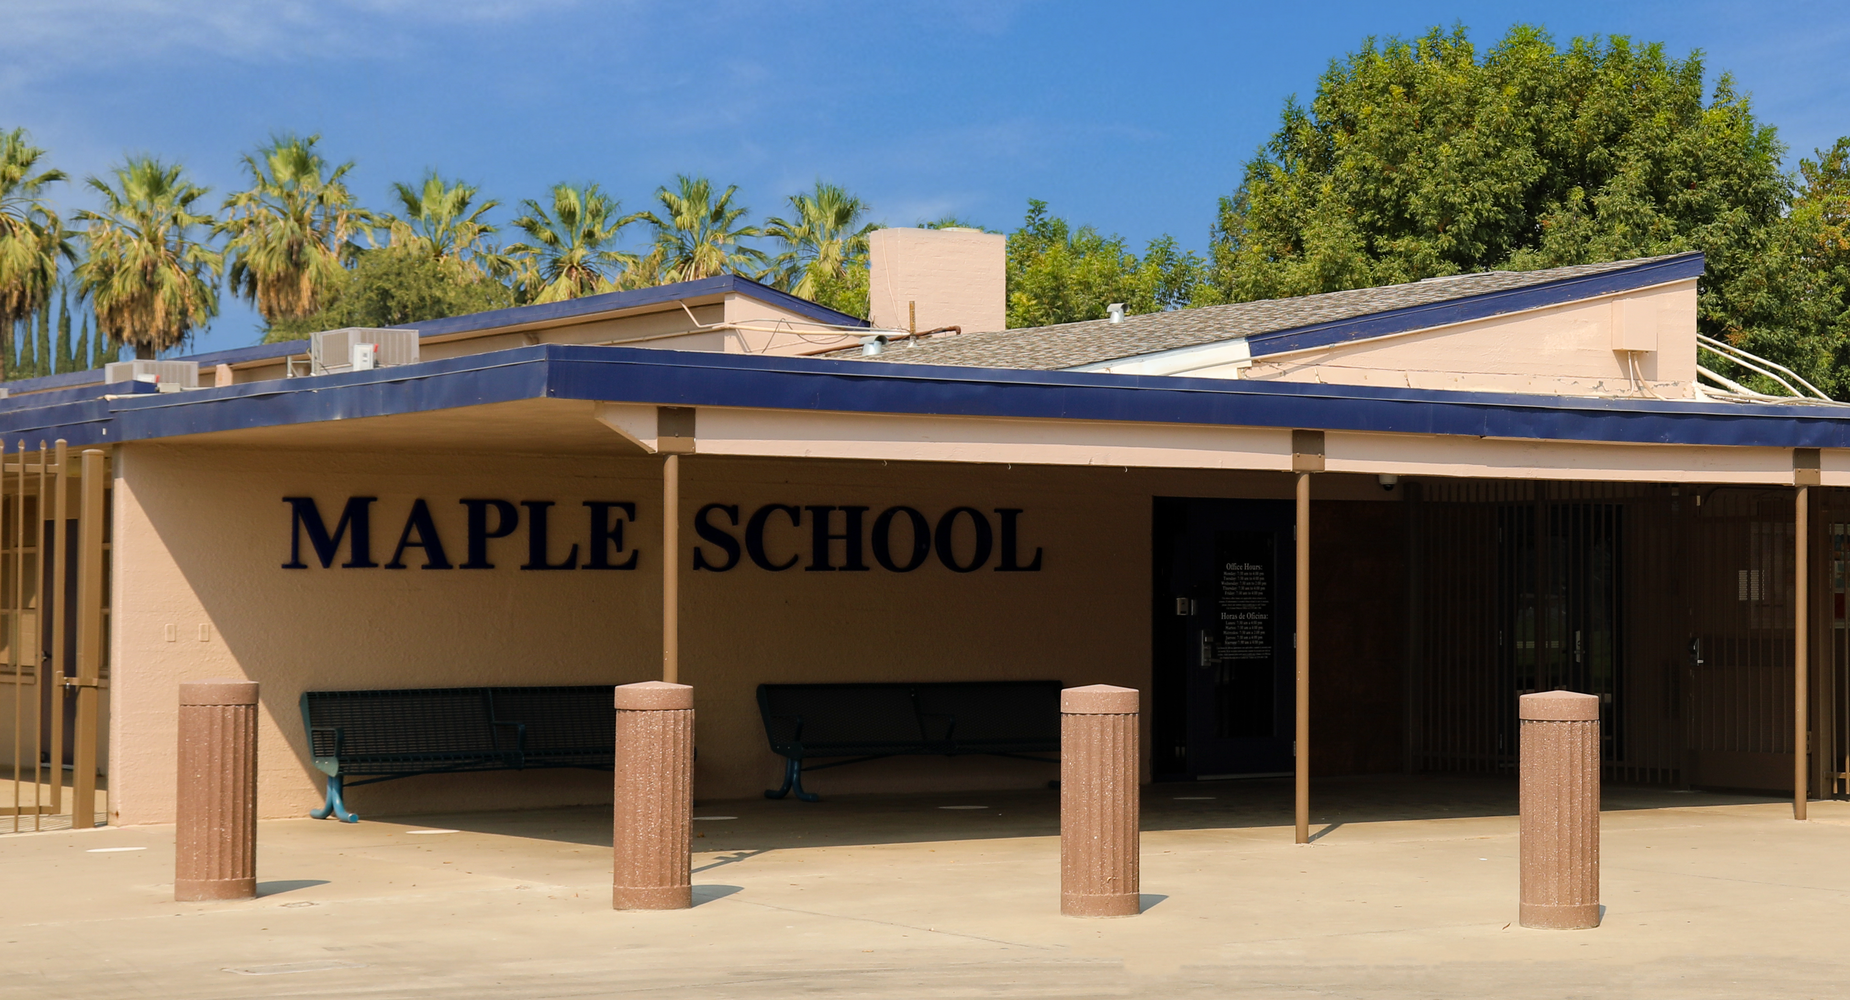 Maple School Office Building